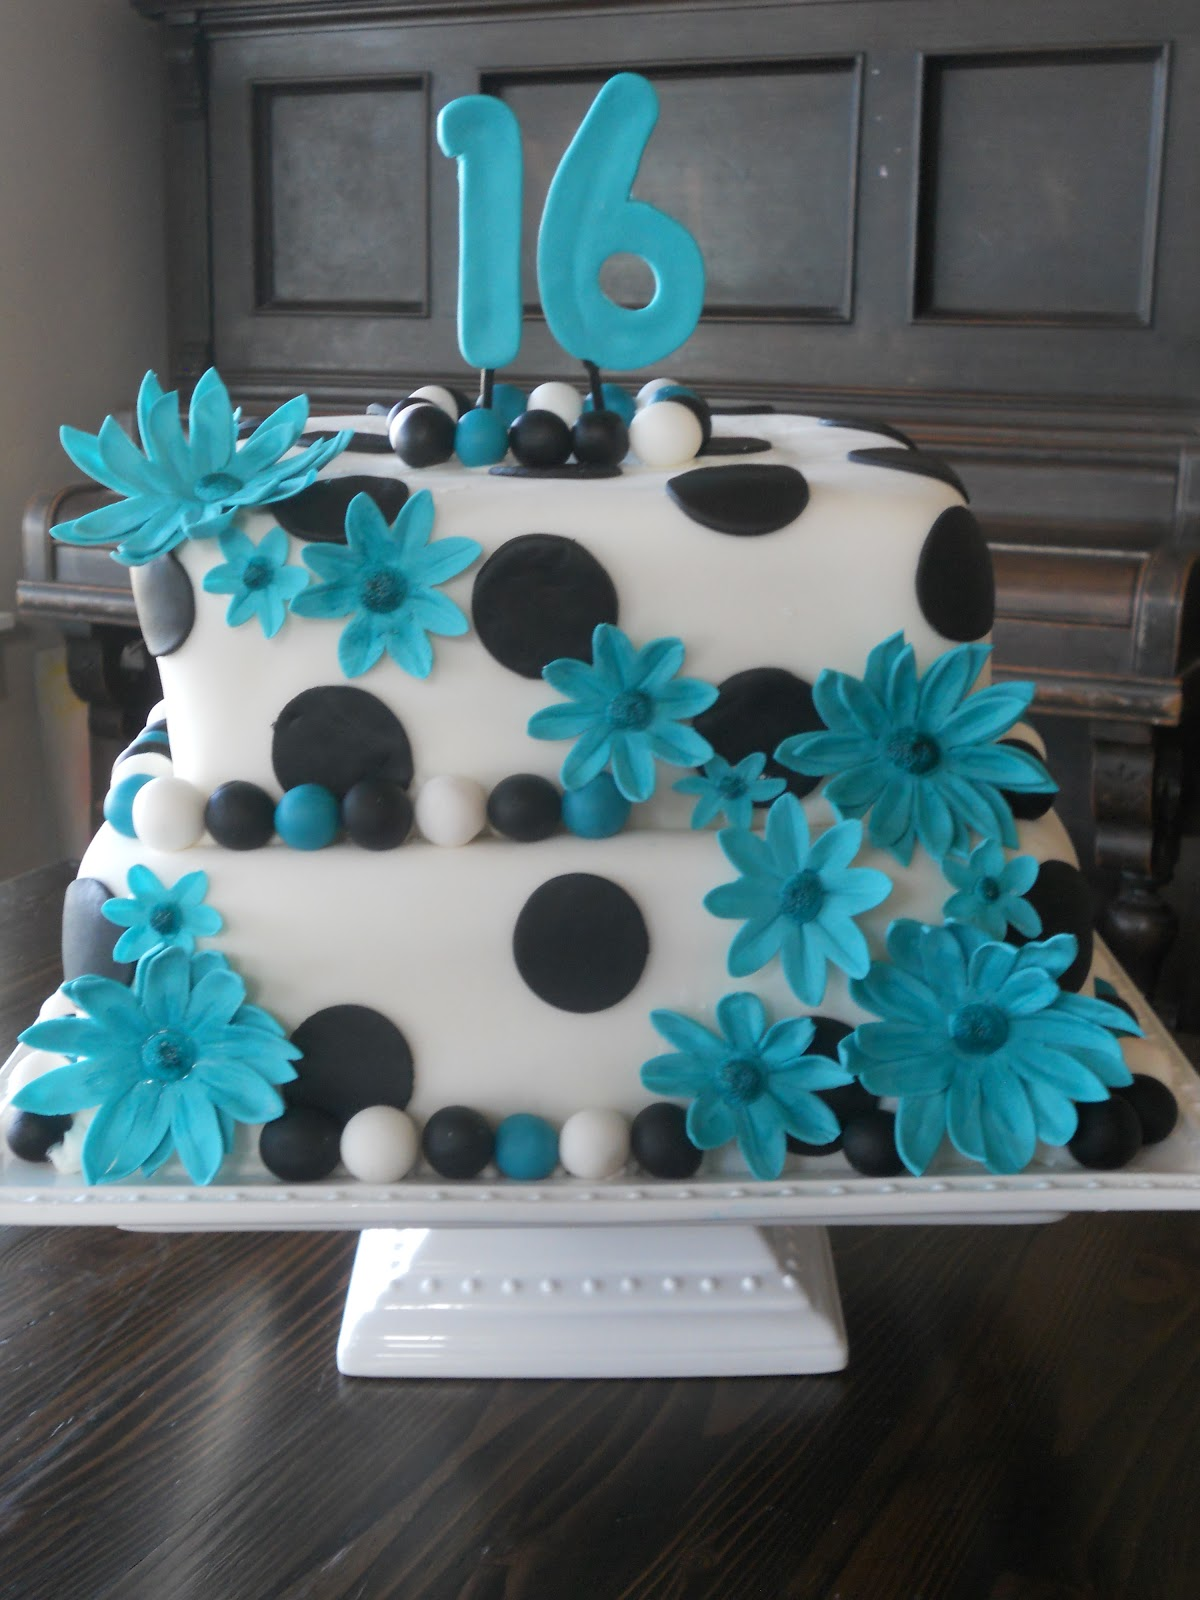 13 Squares In Aqua And Black Sweet 16 Cakes Photo Light Blue And